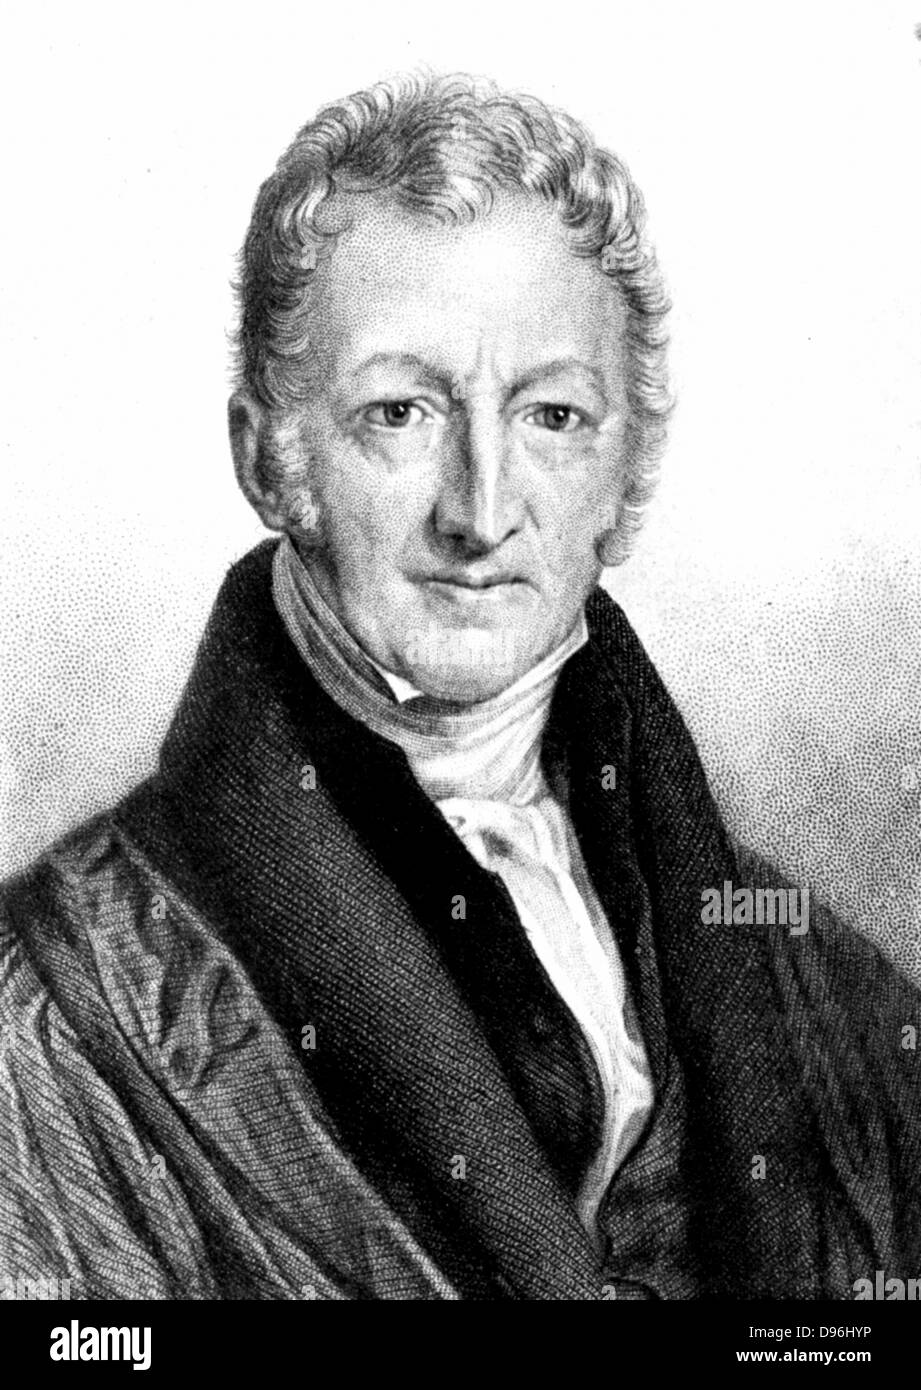 thomas robert malthus english economist and clergyman stock photo thomas robert malthus 1766 1834 english economist and clergyman author of essay on the principle of population 1798